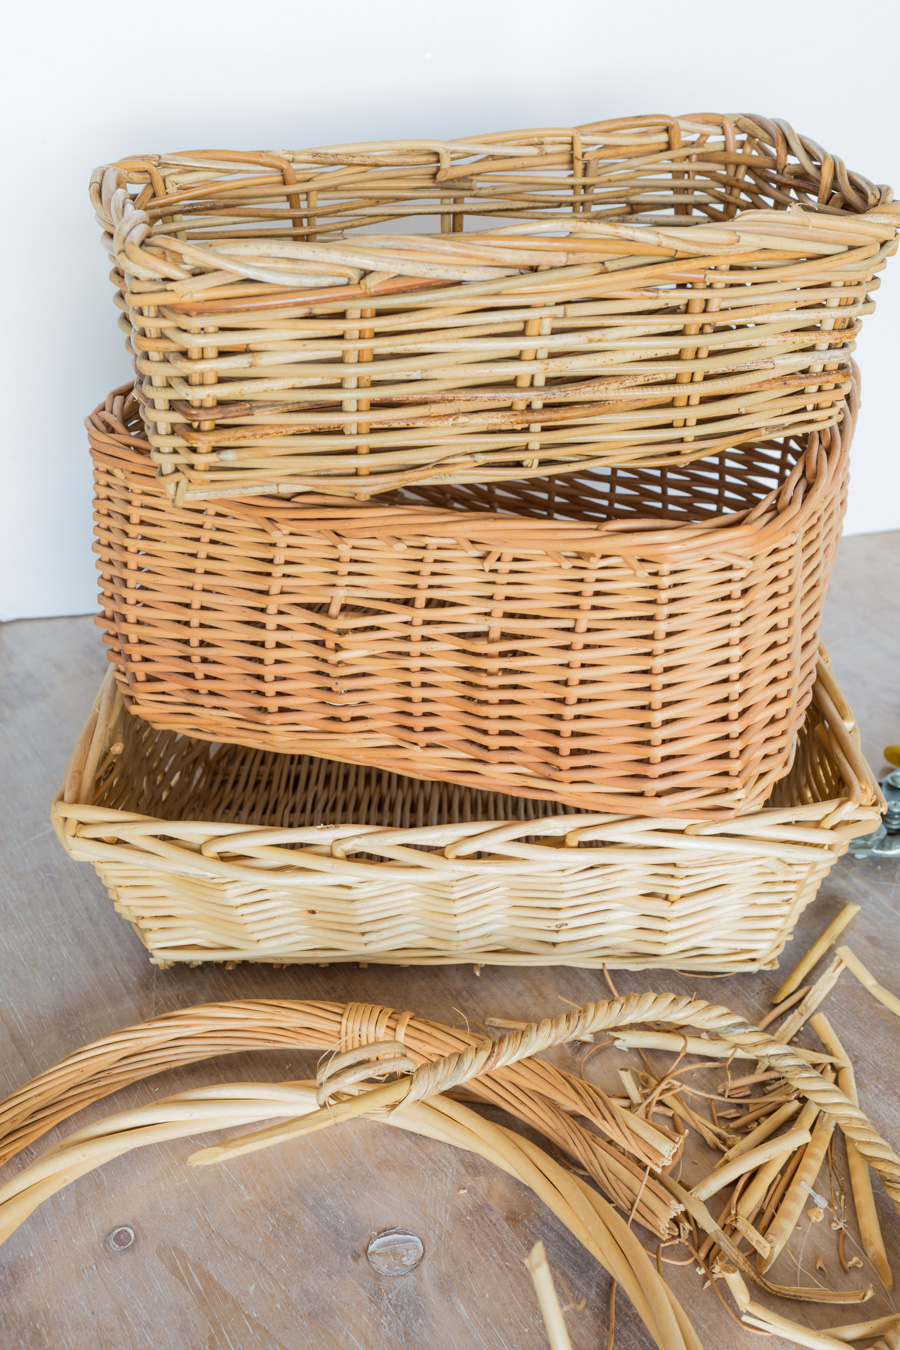 3 wicker baskets stacked on top of each other